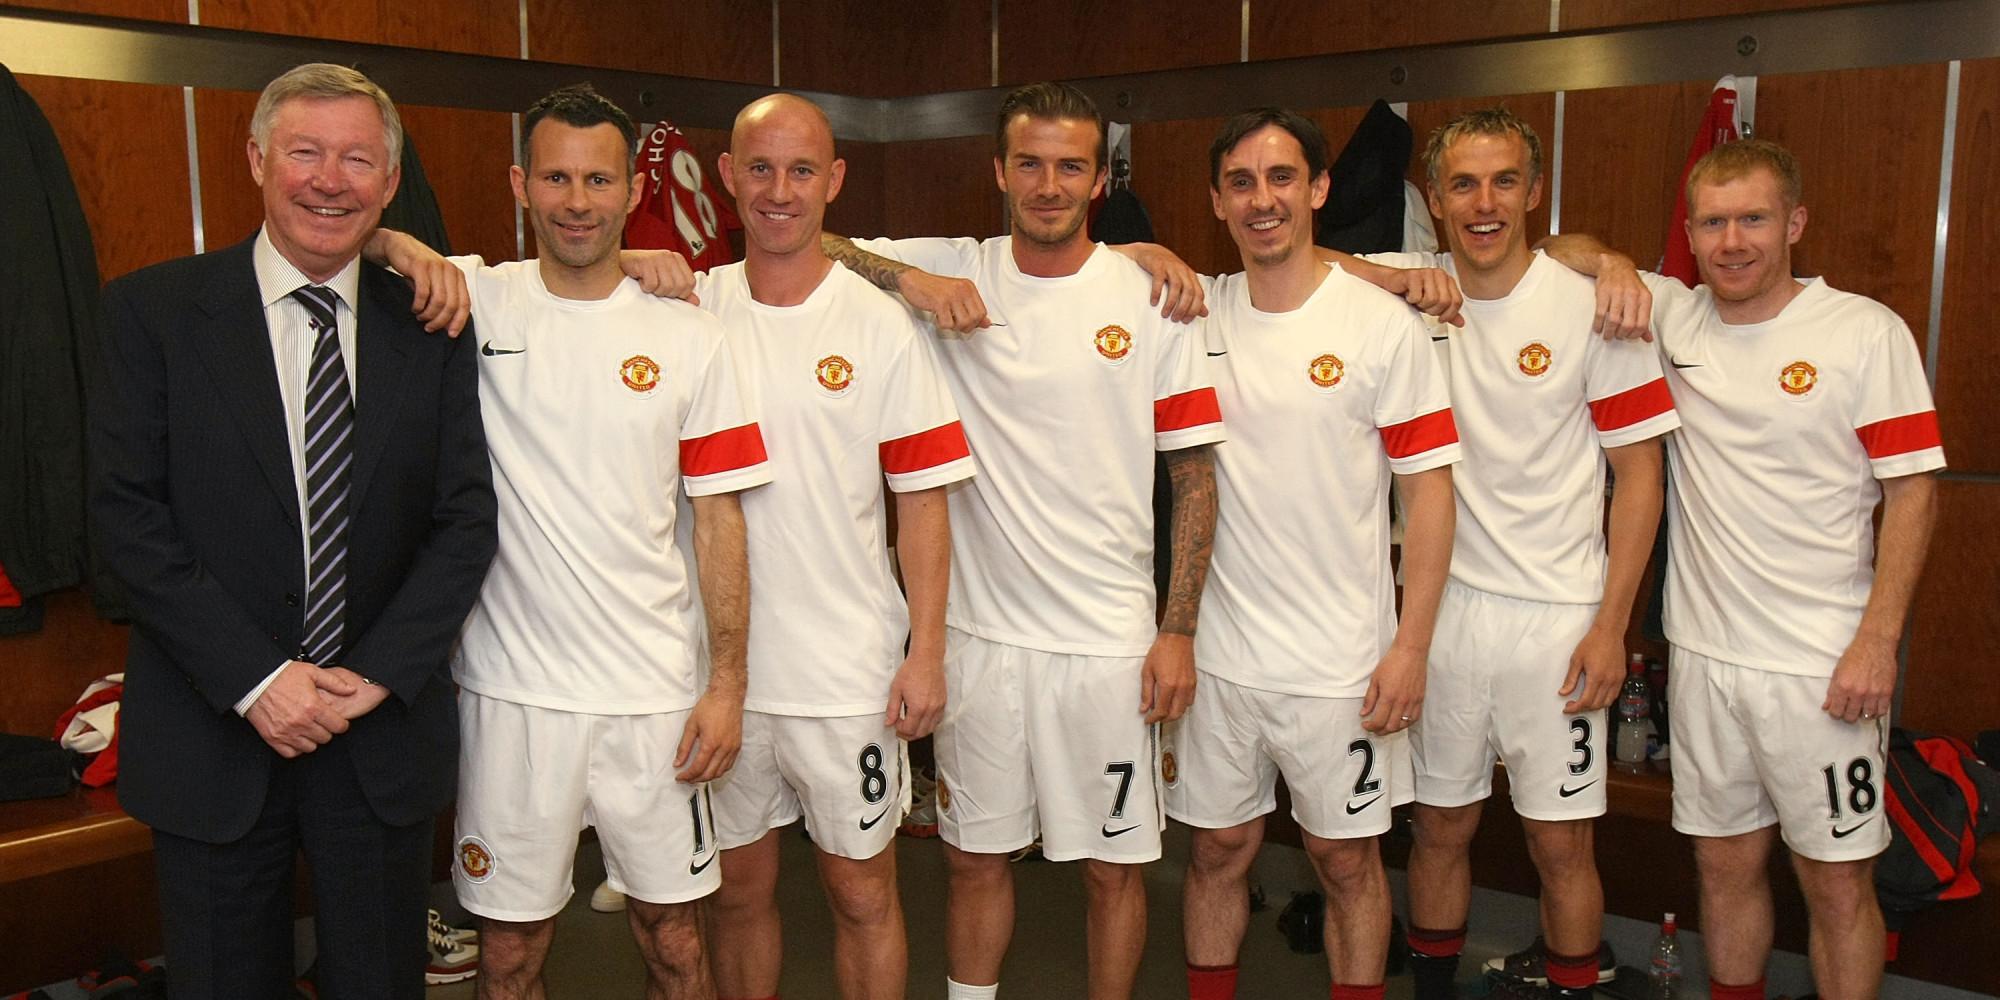 MANCHESTER, ENGLAND - MAY 24: (EXCLUSIVE COVERAGE: MINIMUM FEES APPLY - 250GBP OR LOCAL EQUIVALENT, PER IMAGE)  (L-R) Sir Alex Ferguson, Ryan Giggs, Nicky Butt, David Beckham, Gary Neville, Phil Neville and Paul Scholes of Manchester United recreate the famous Class of '92 photo from 1992 ahead of Gary Neville's testimonial match between Manchester United and Juventus at Old Trafford on May 24, 2011 in Manchester, England.  (Photo by John Peters/Man Utd via Getty Images)